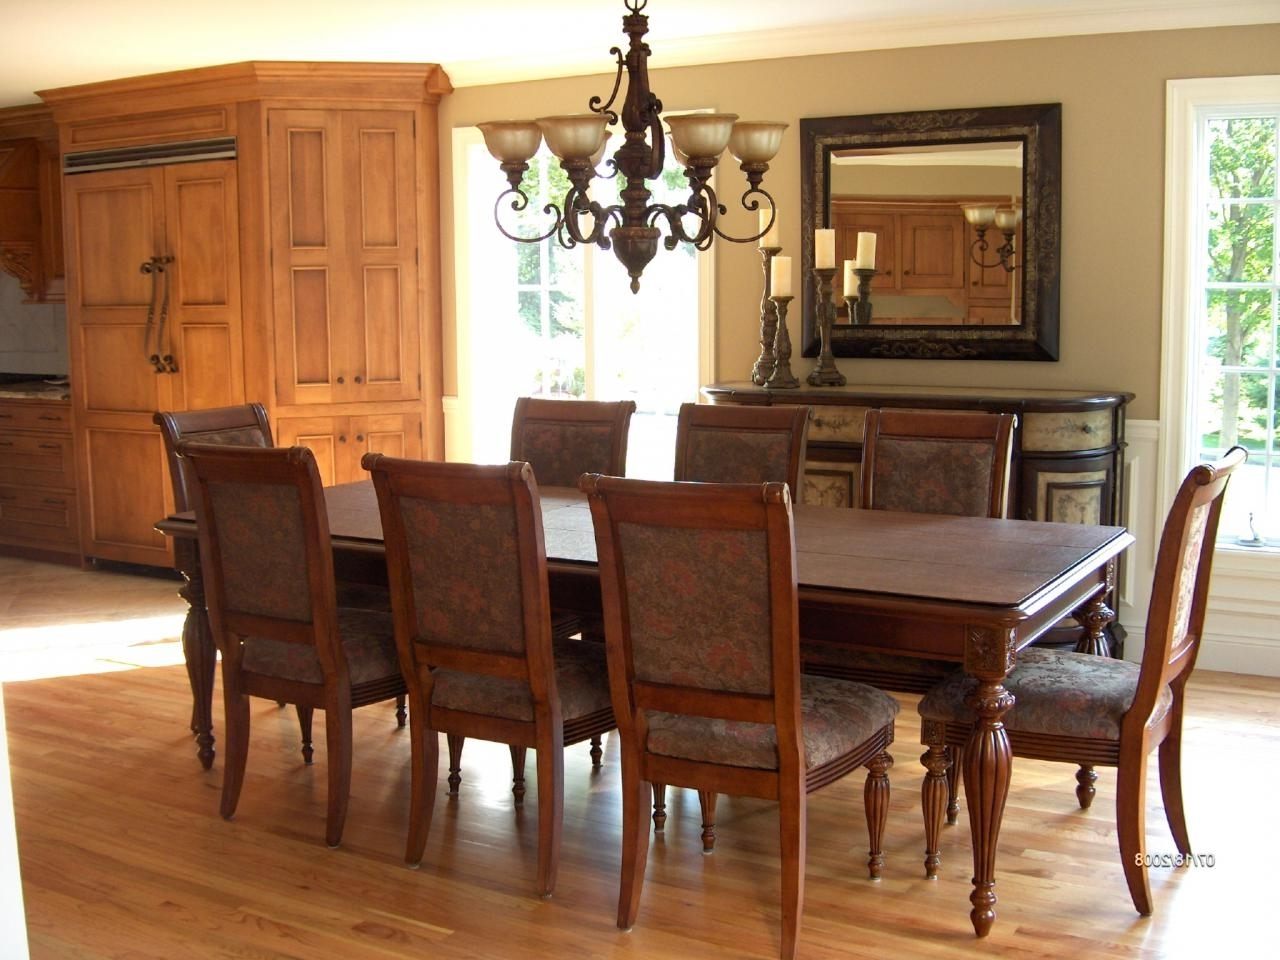 Featured Image of Wooden Italian Dining Room Set In Modern Look